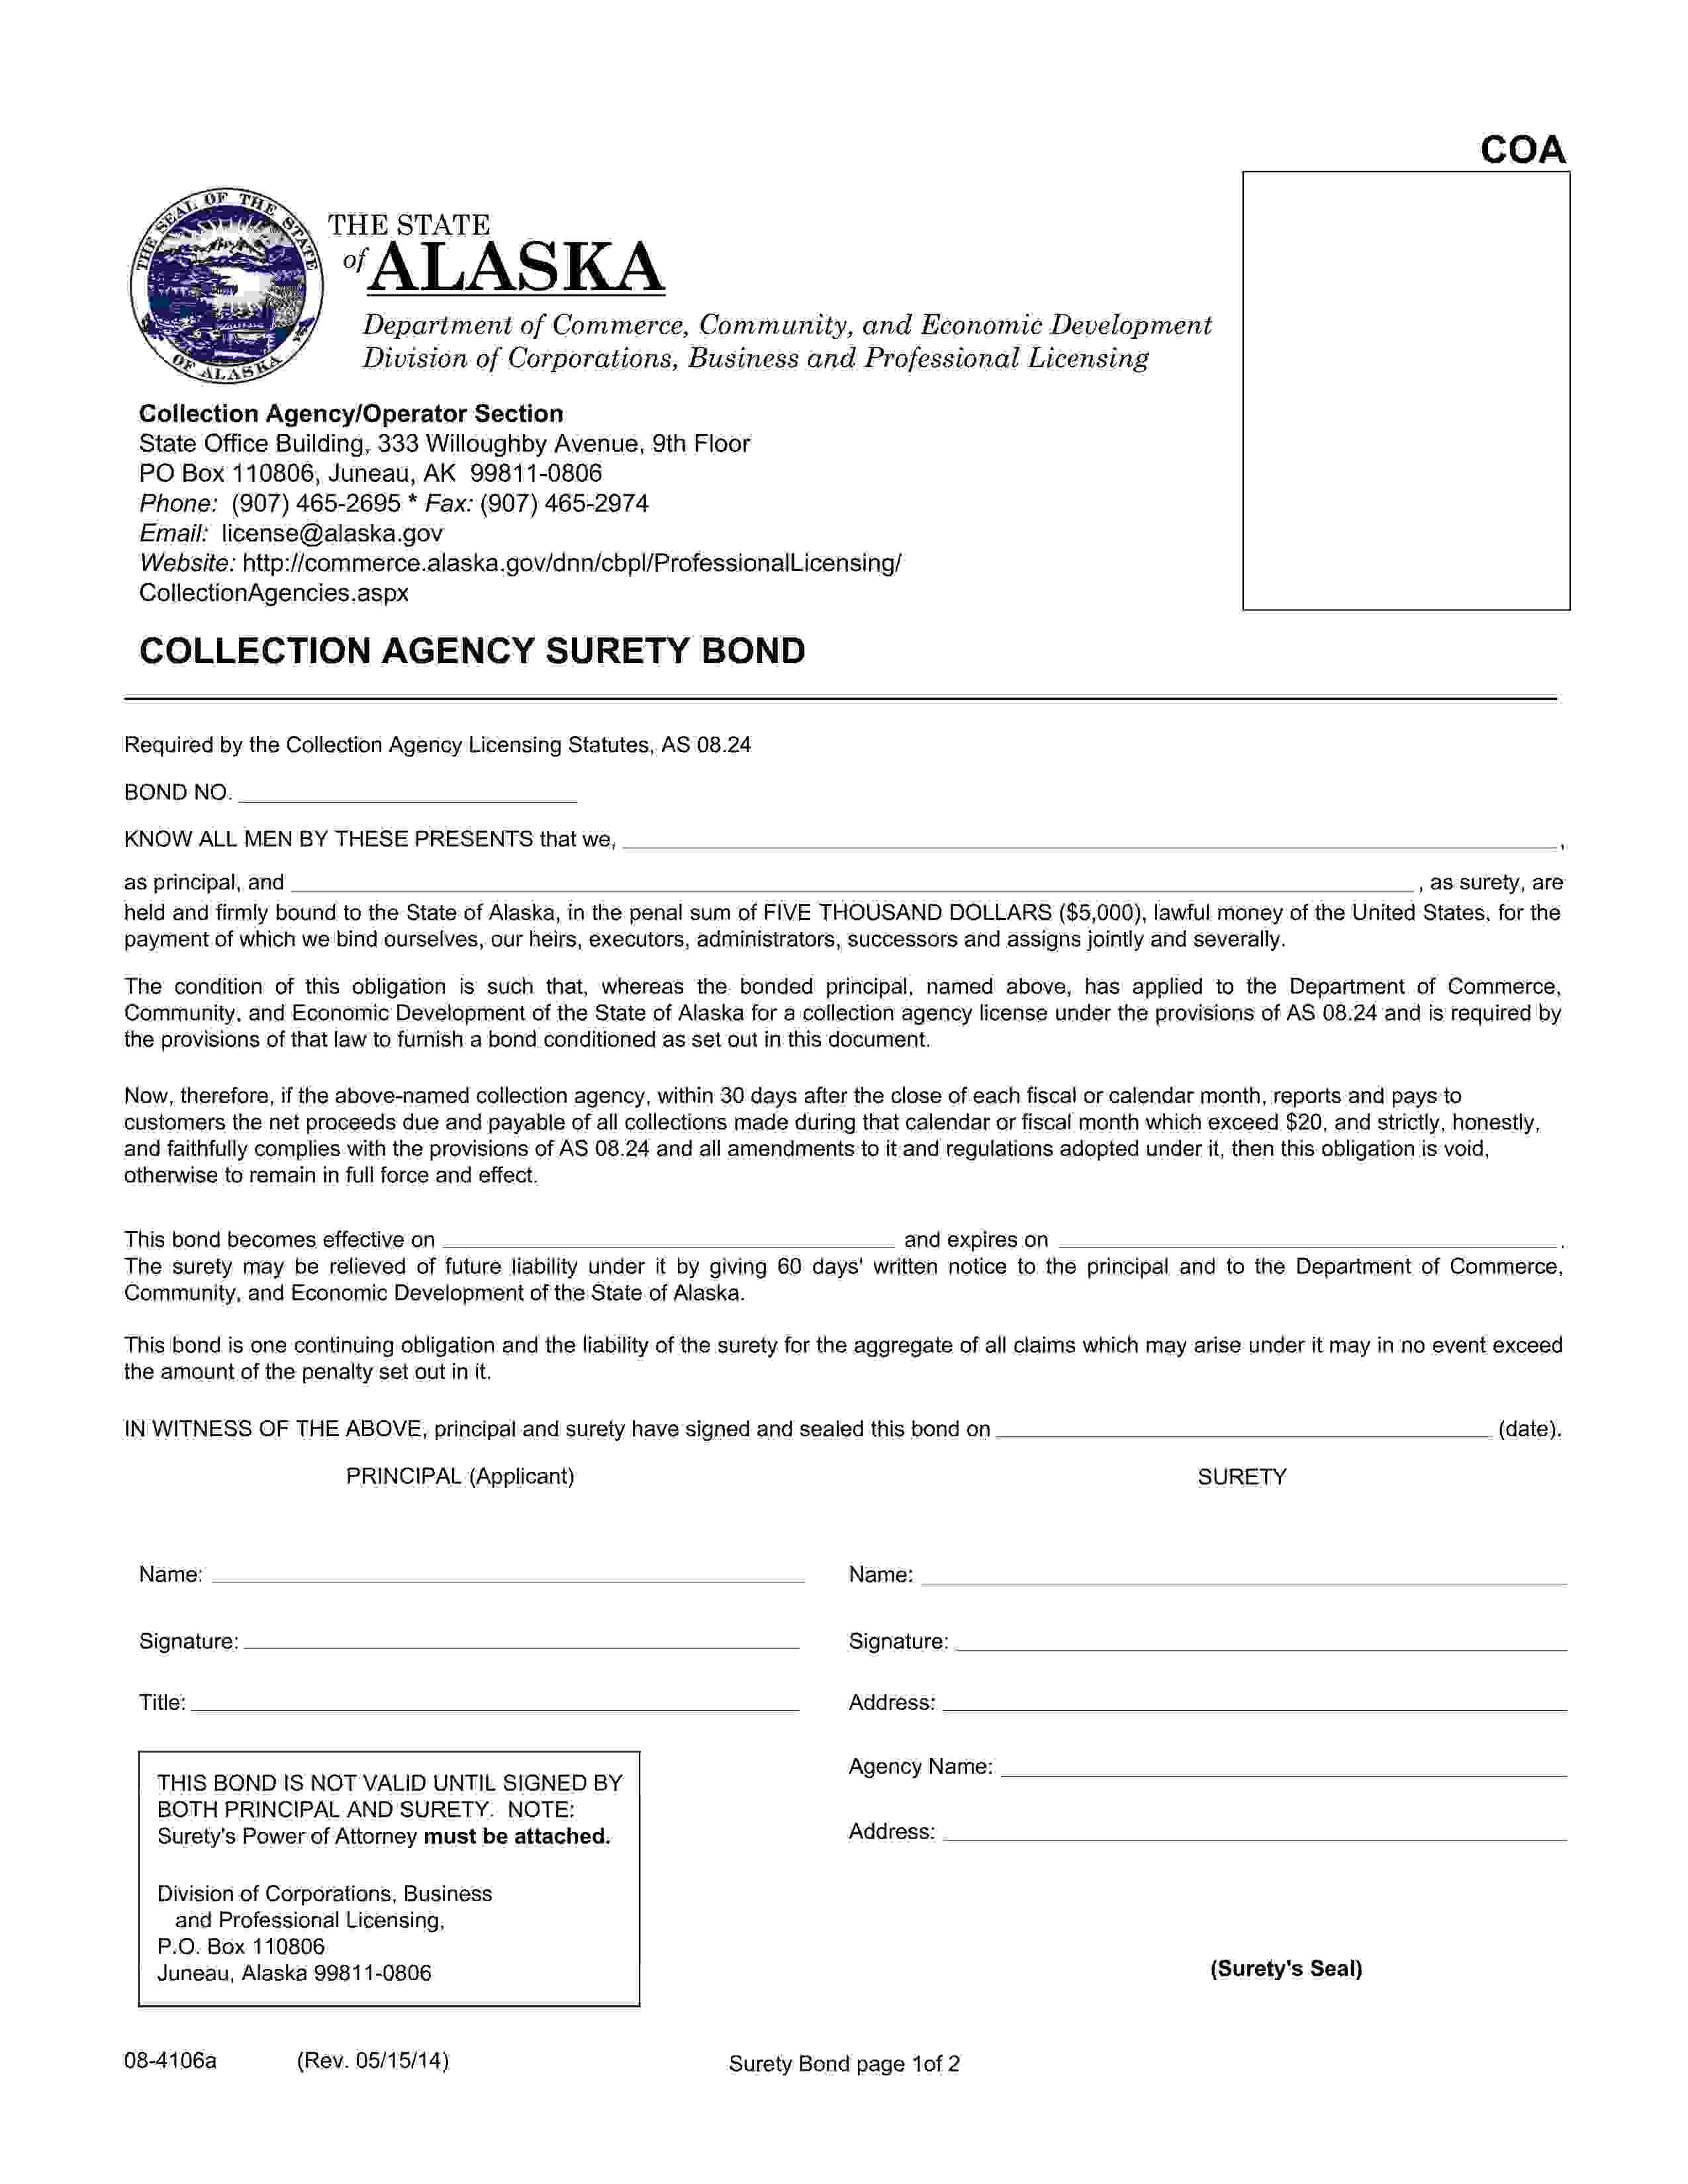 Municipality of Anchorage Collection Agency sample image